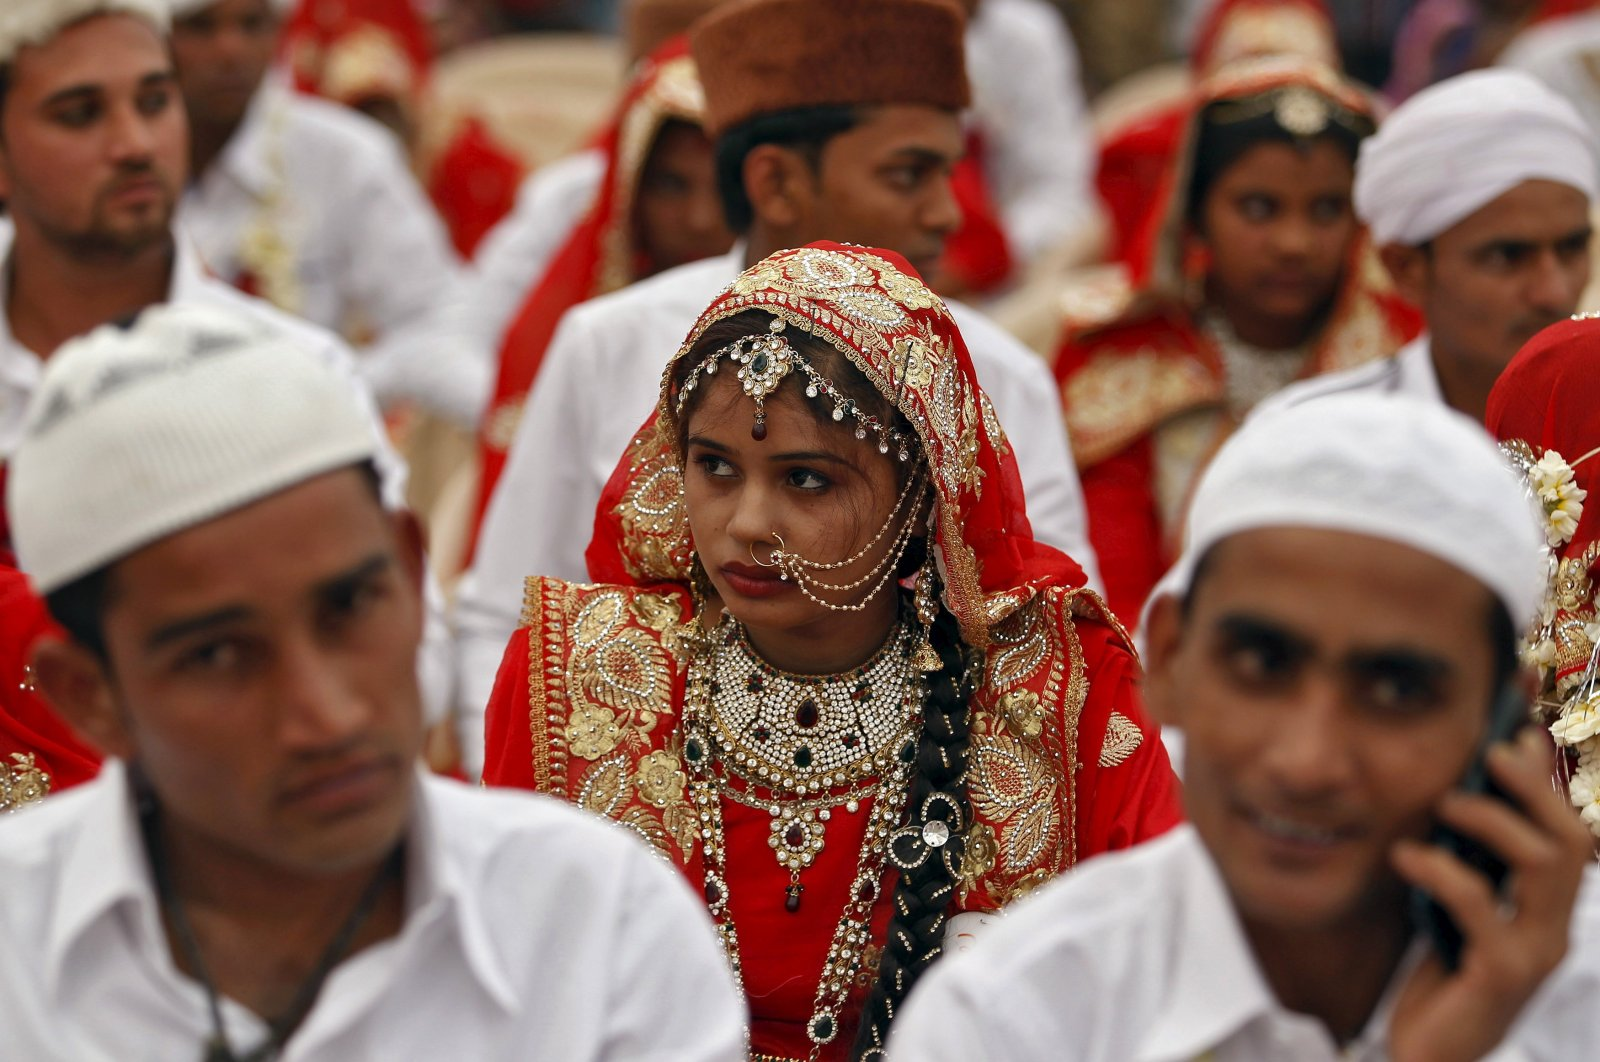 Brides and grooms take part in a mass marriage ceremony in Ahmedabad, India, Jan. 22, 2016. (Reuters Photo)